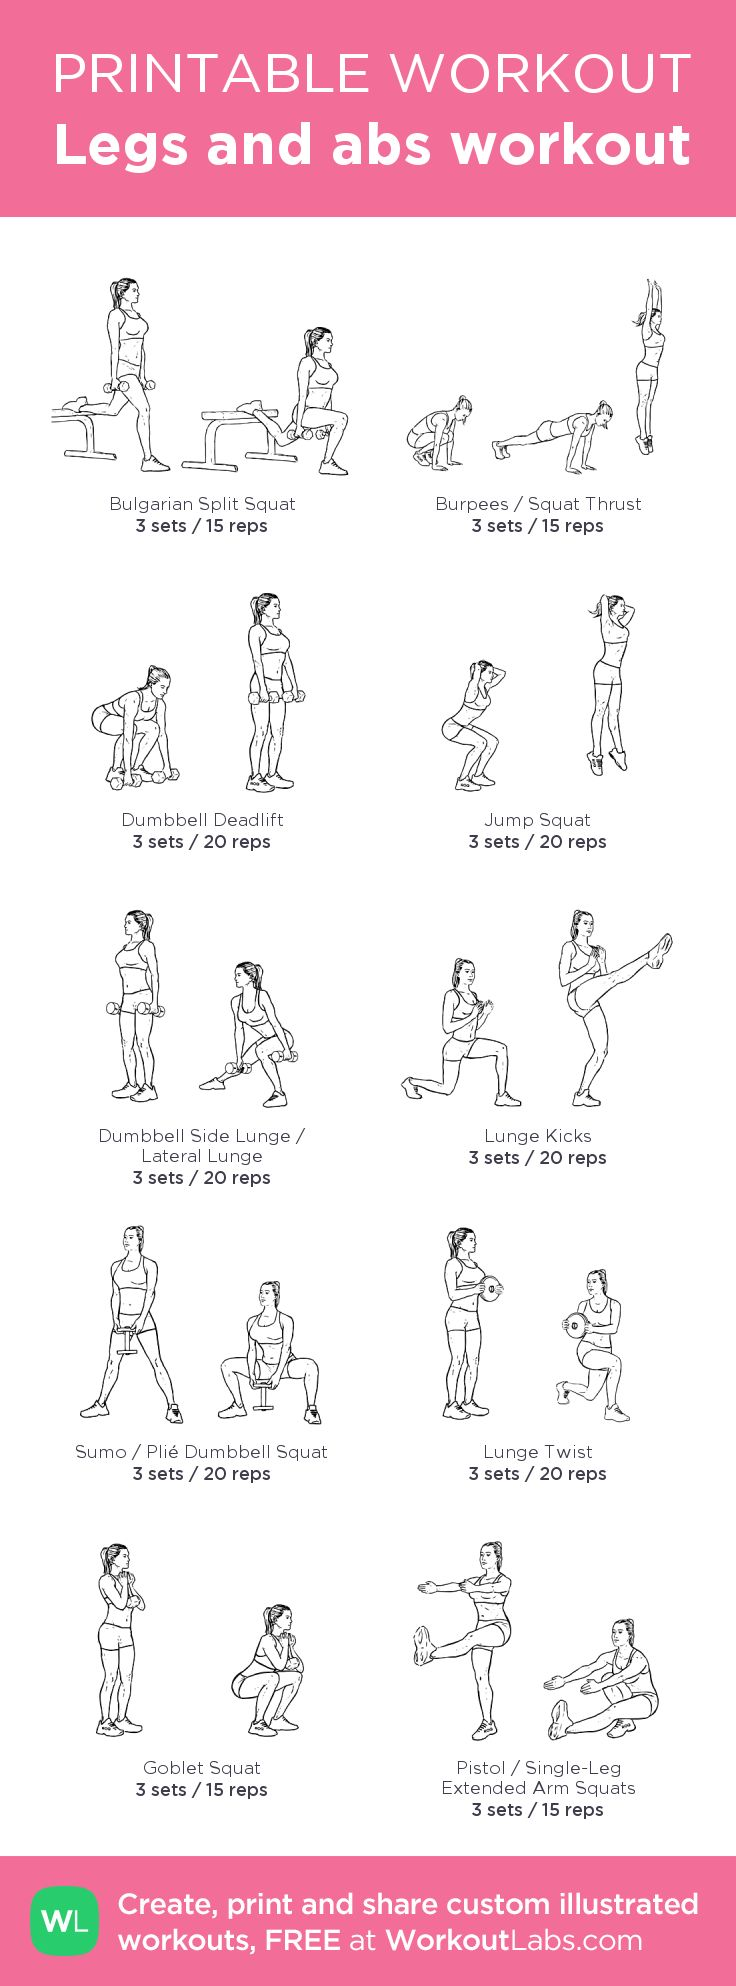 Legs and abs workout – my custom workout created at WorkoutLabs.com • Click through to download as printable PDF! #customworkout